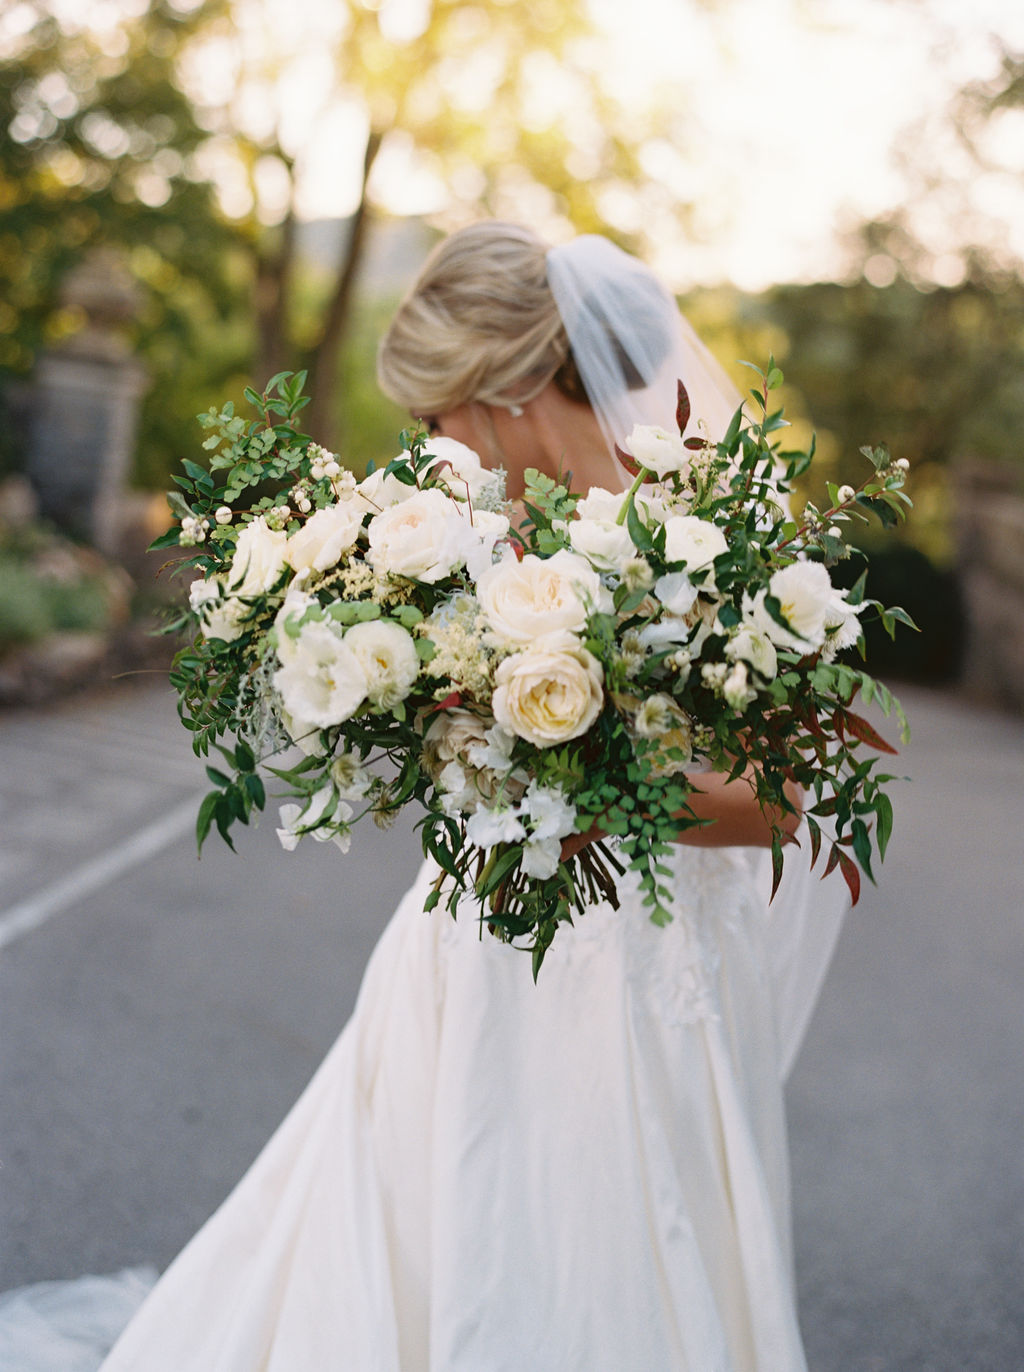 Untamed, asymmetrical bride's bouquet with all white flowers and natural greenery. Southeast US Wedding Floral Design.